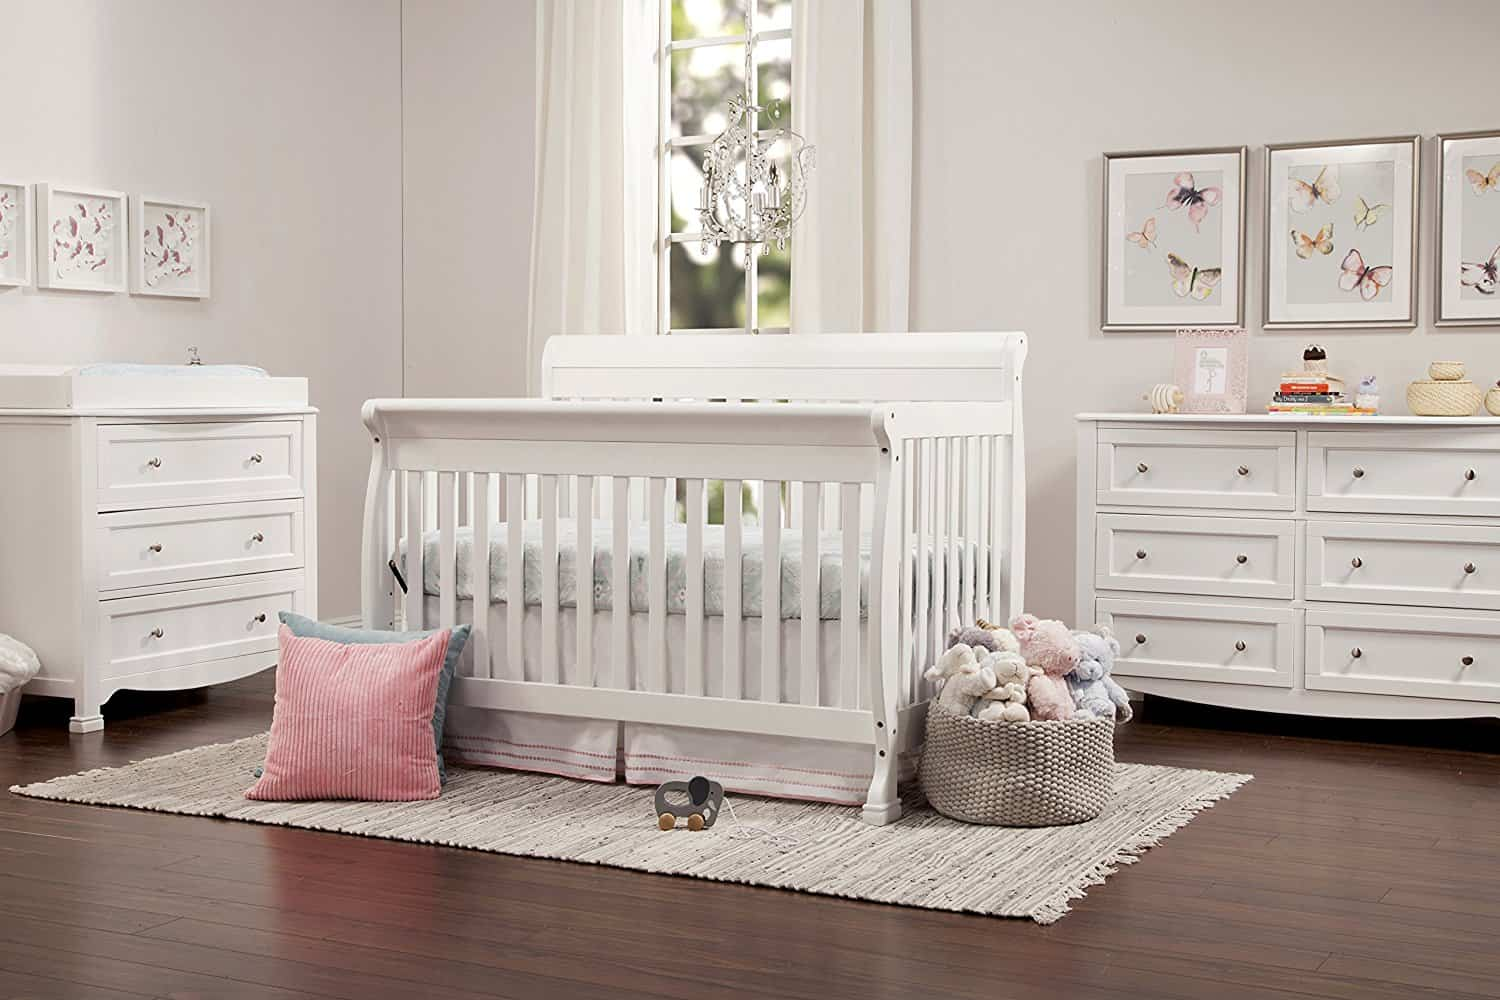 Best Baby Crib 2017 Baby Bargains